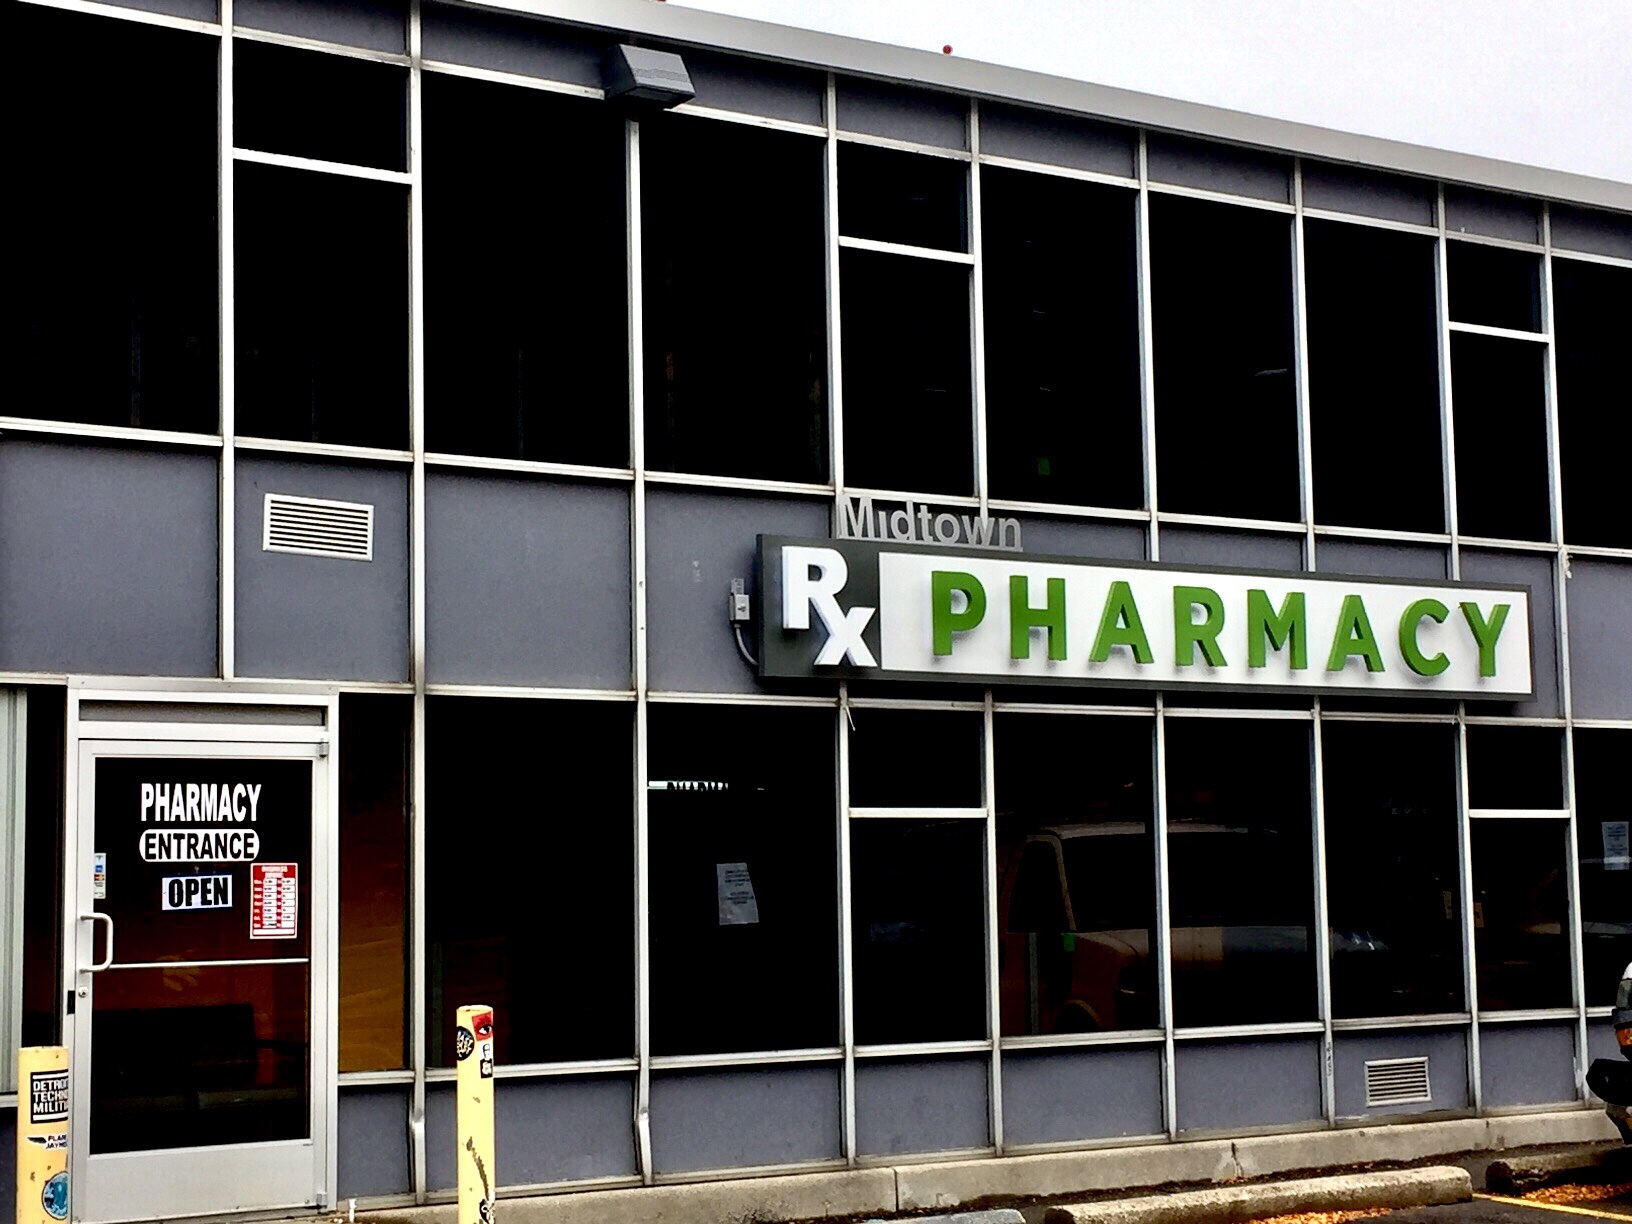 Mike Srour, Pharm.D., owner and operating pharmacist of Midtown Rx Pharmacy, prioritizes affordability